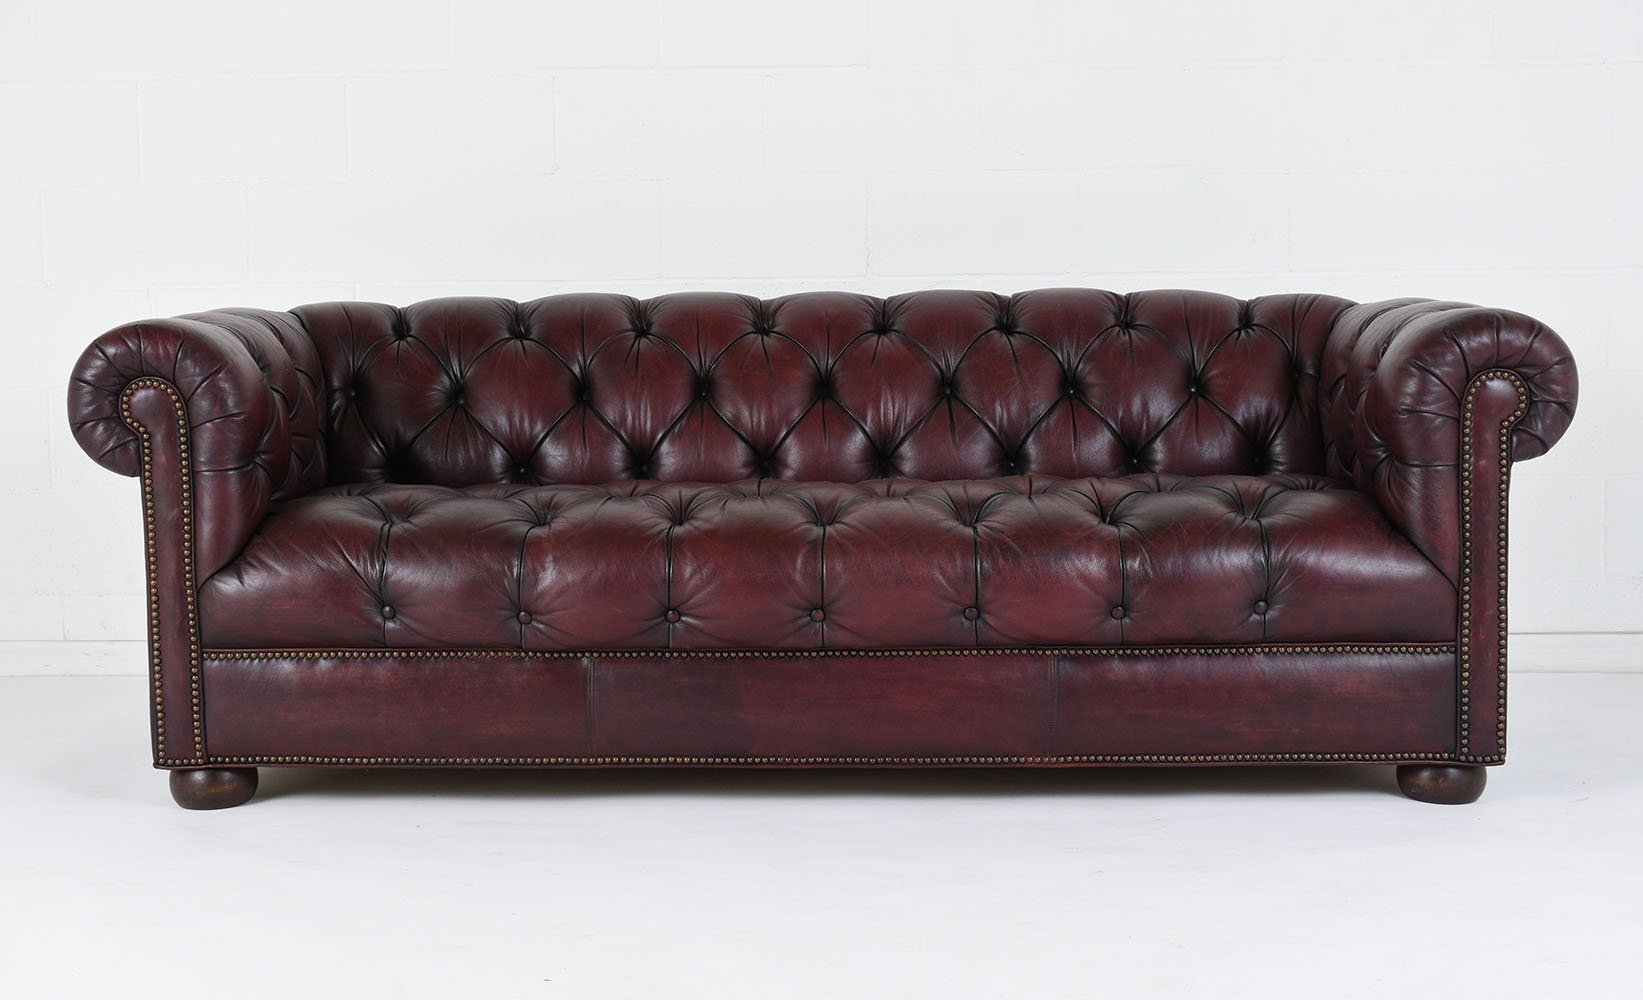 Vintage Tufted Leather Sofa, 1970s